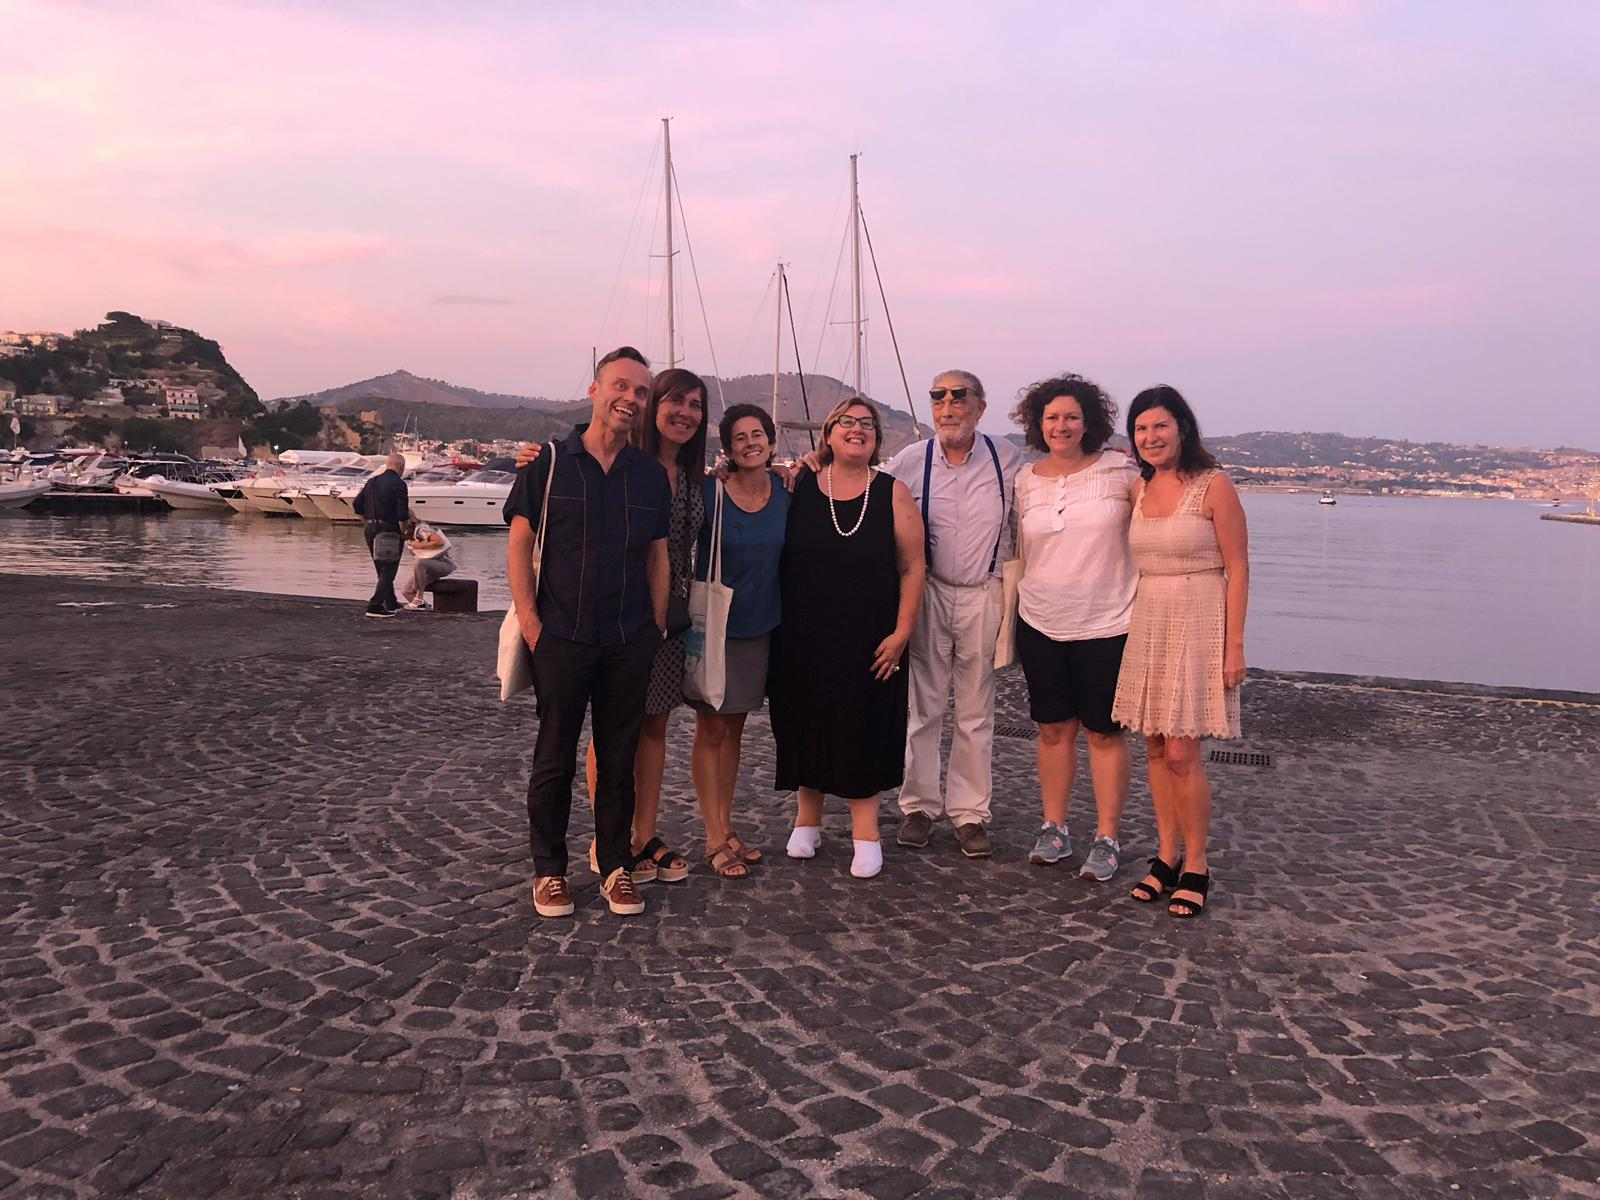 TRANSNATIONAL MEETING IN NAPLES